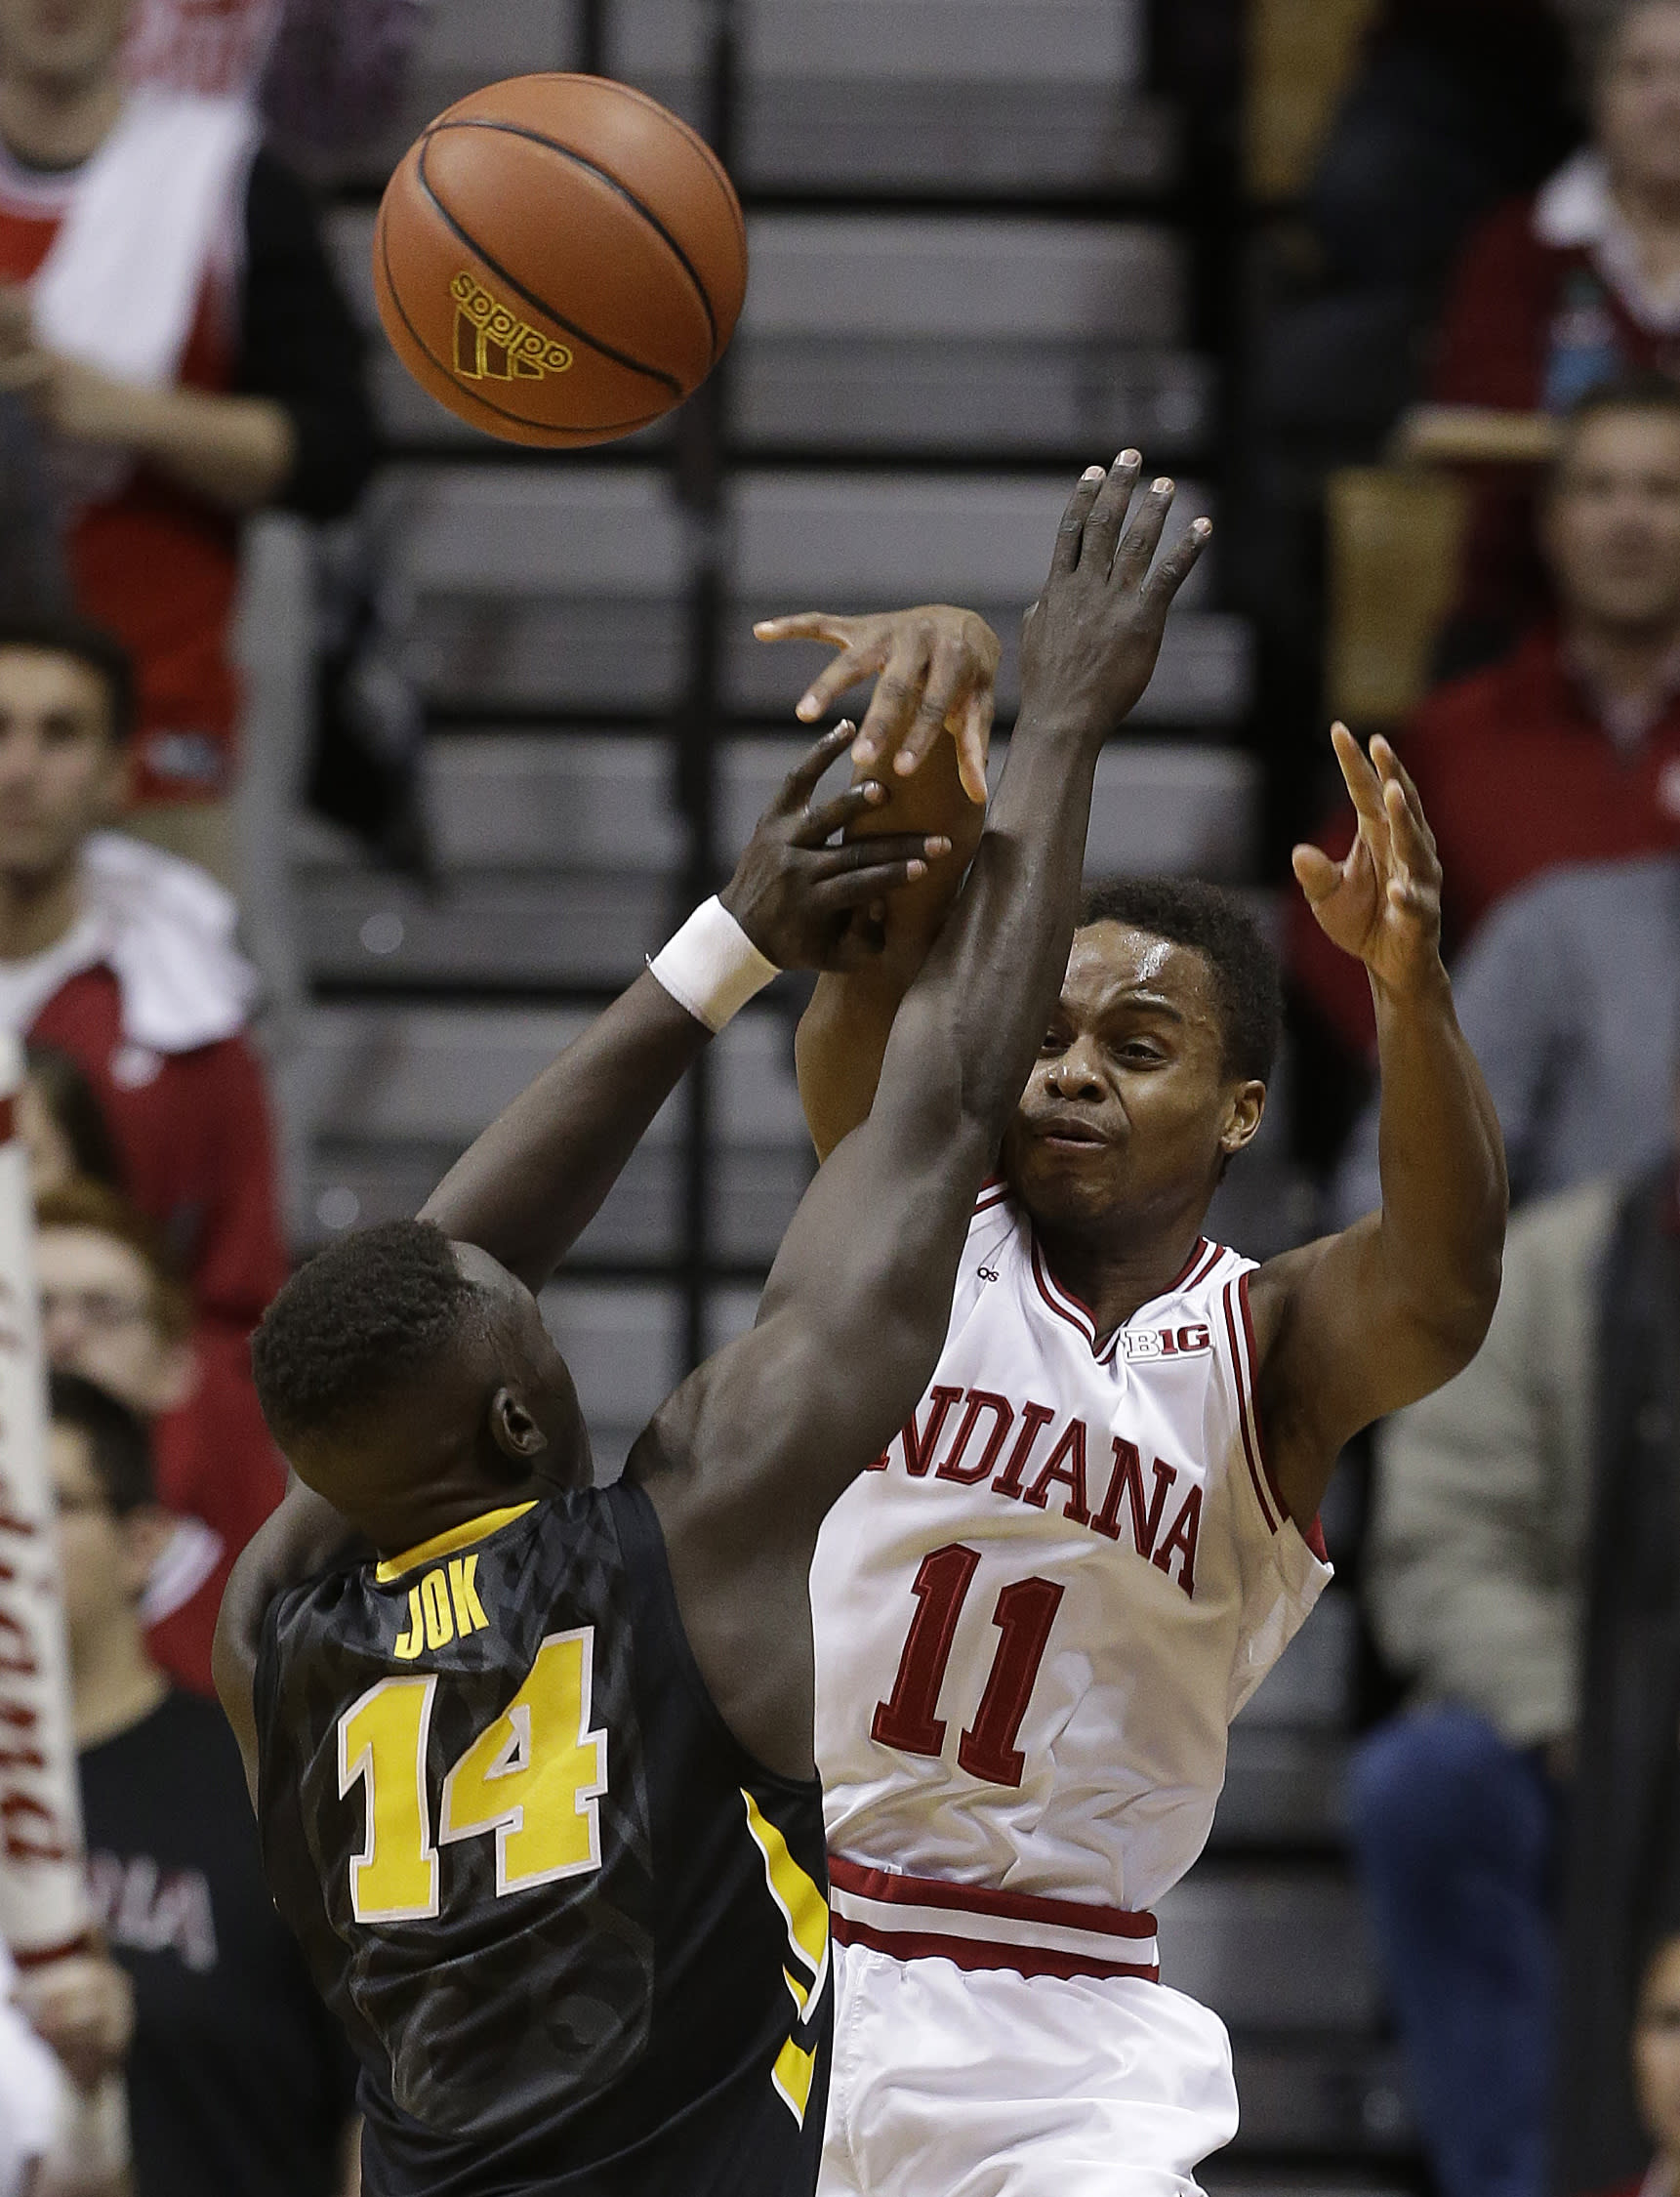 Hoosiers use late surge to upset No. 4 Hawkeyes 85-78